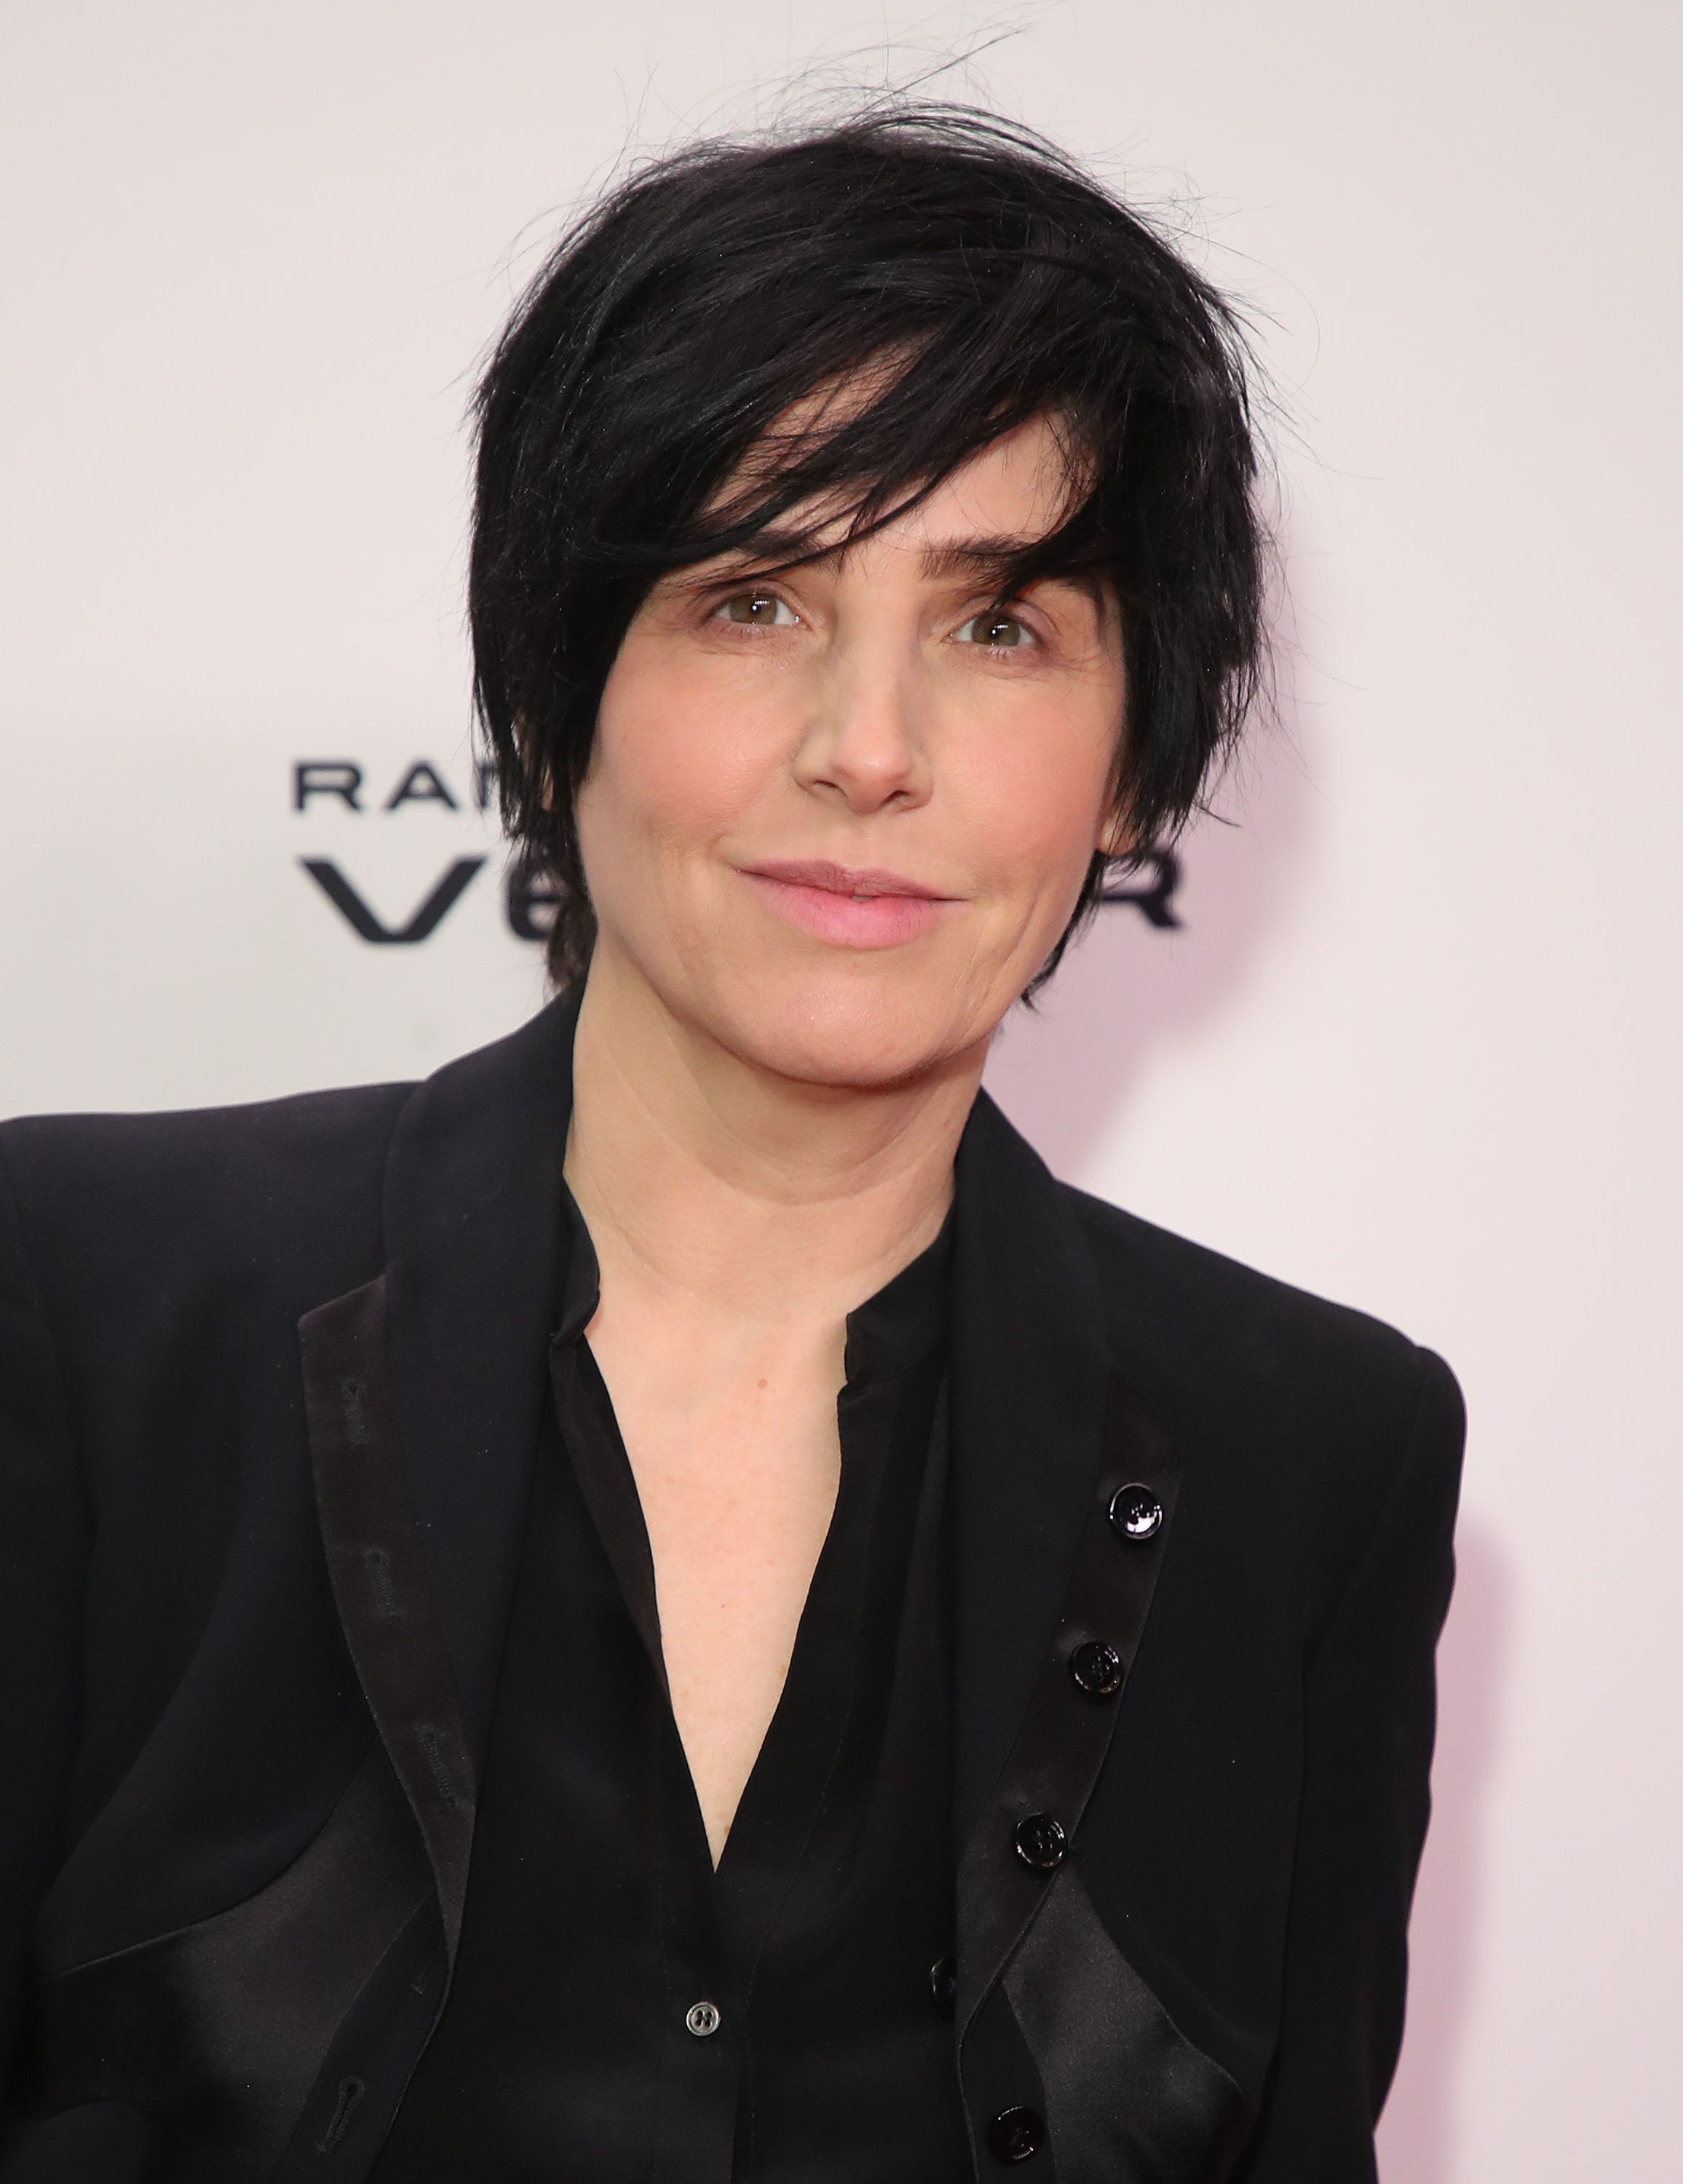 WISE WORDS: Sharleen Shares The Surprising Kindness Of A